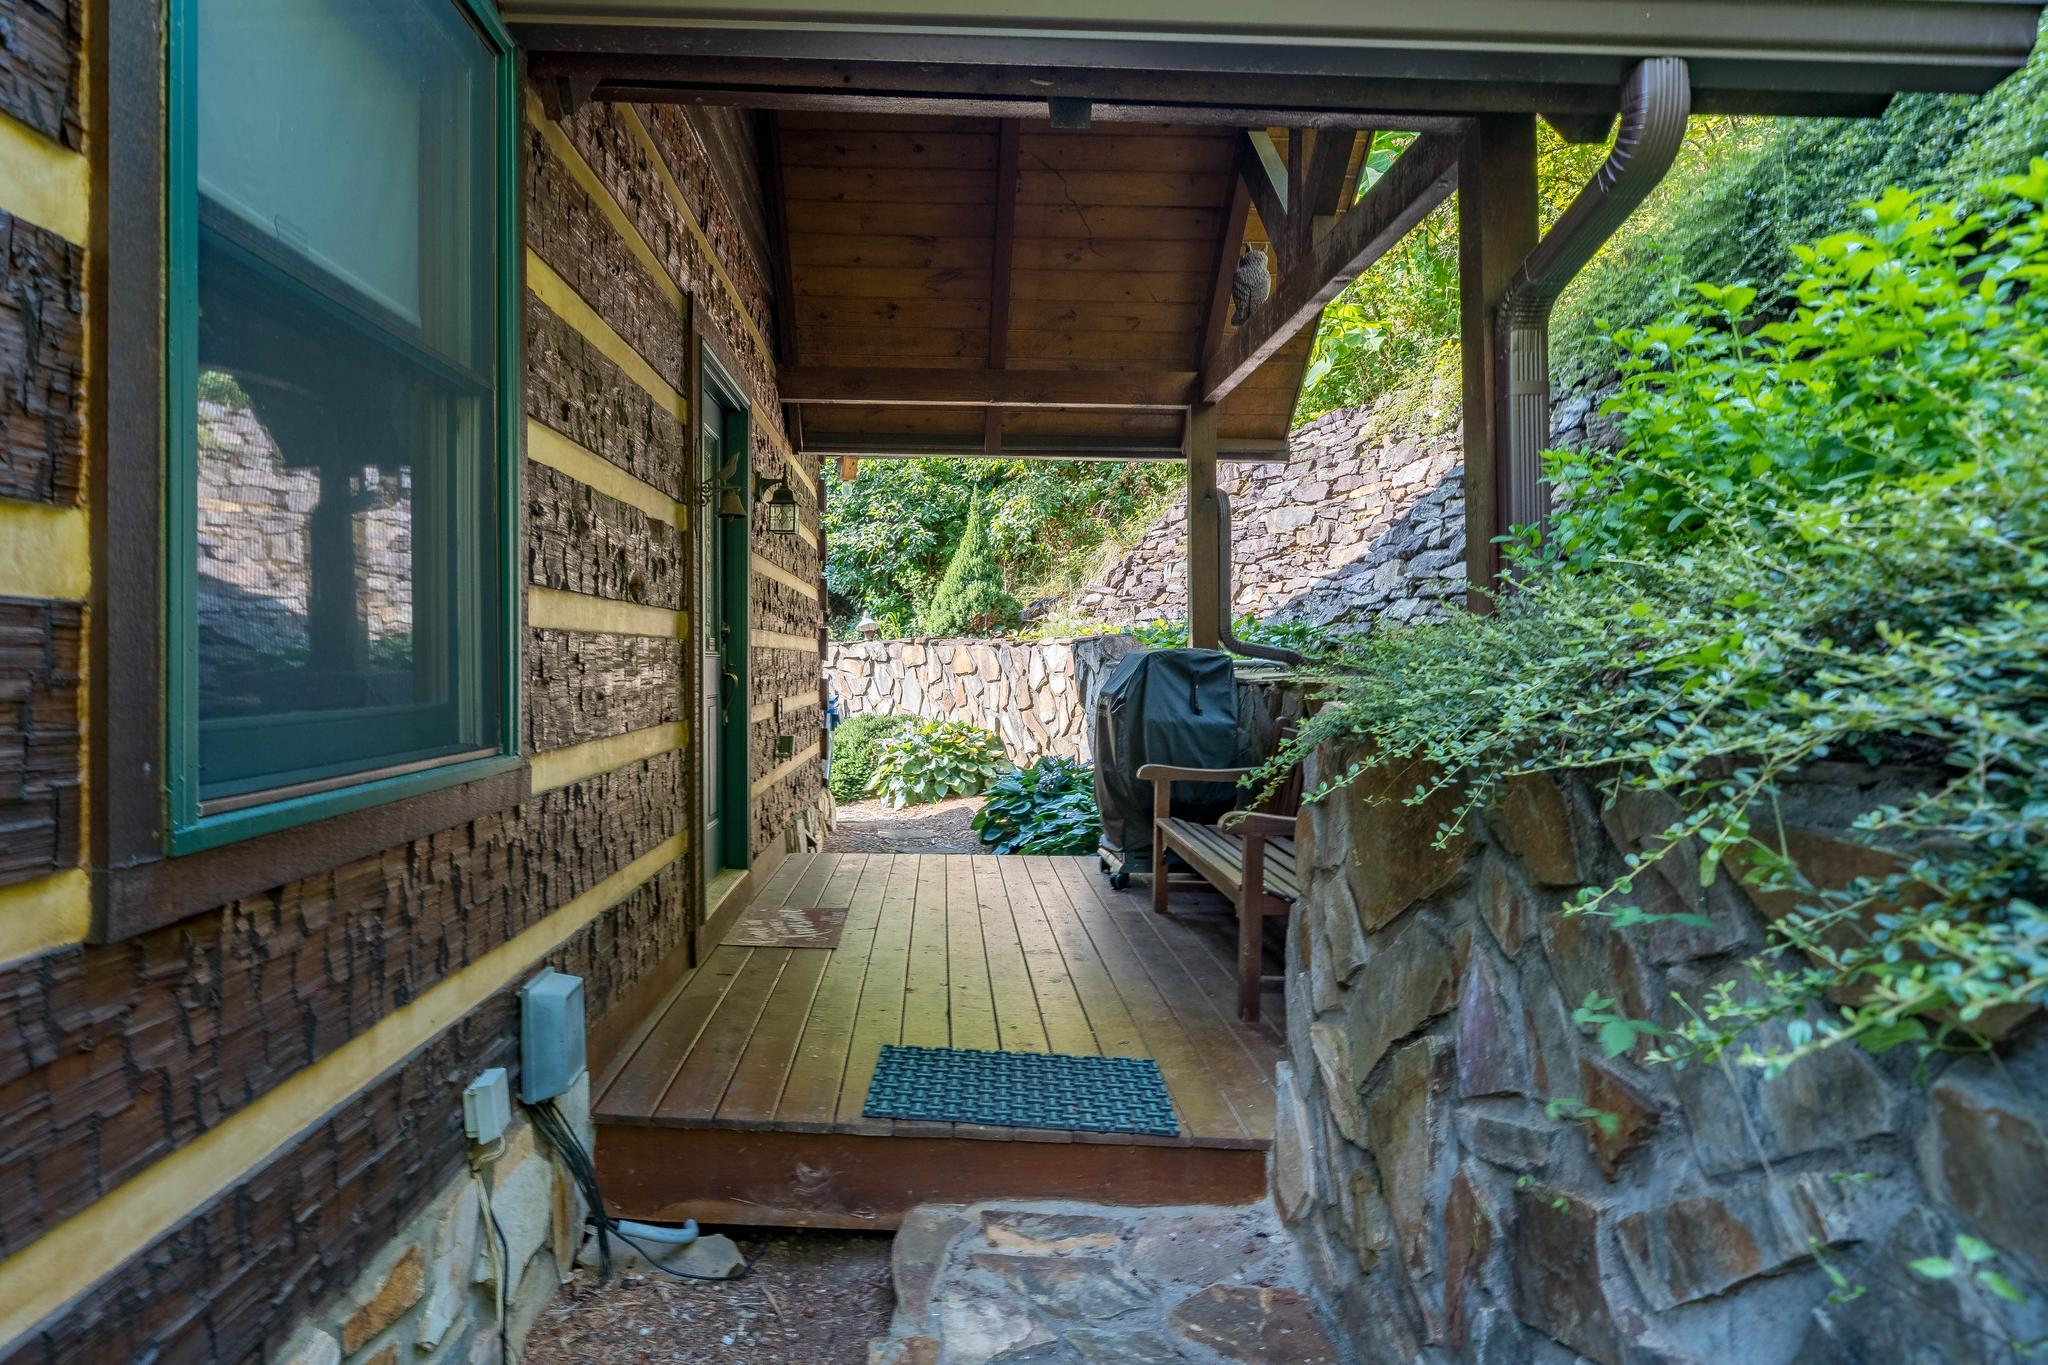 709 cove edge dr (14 of 72)